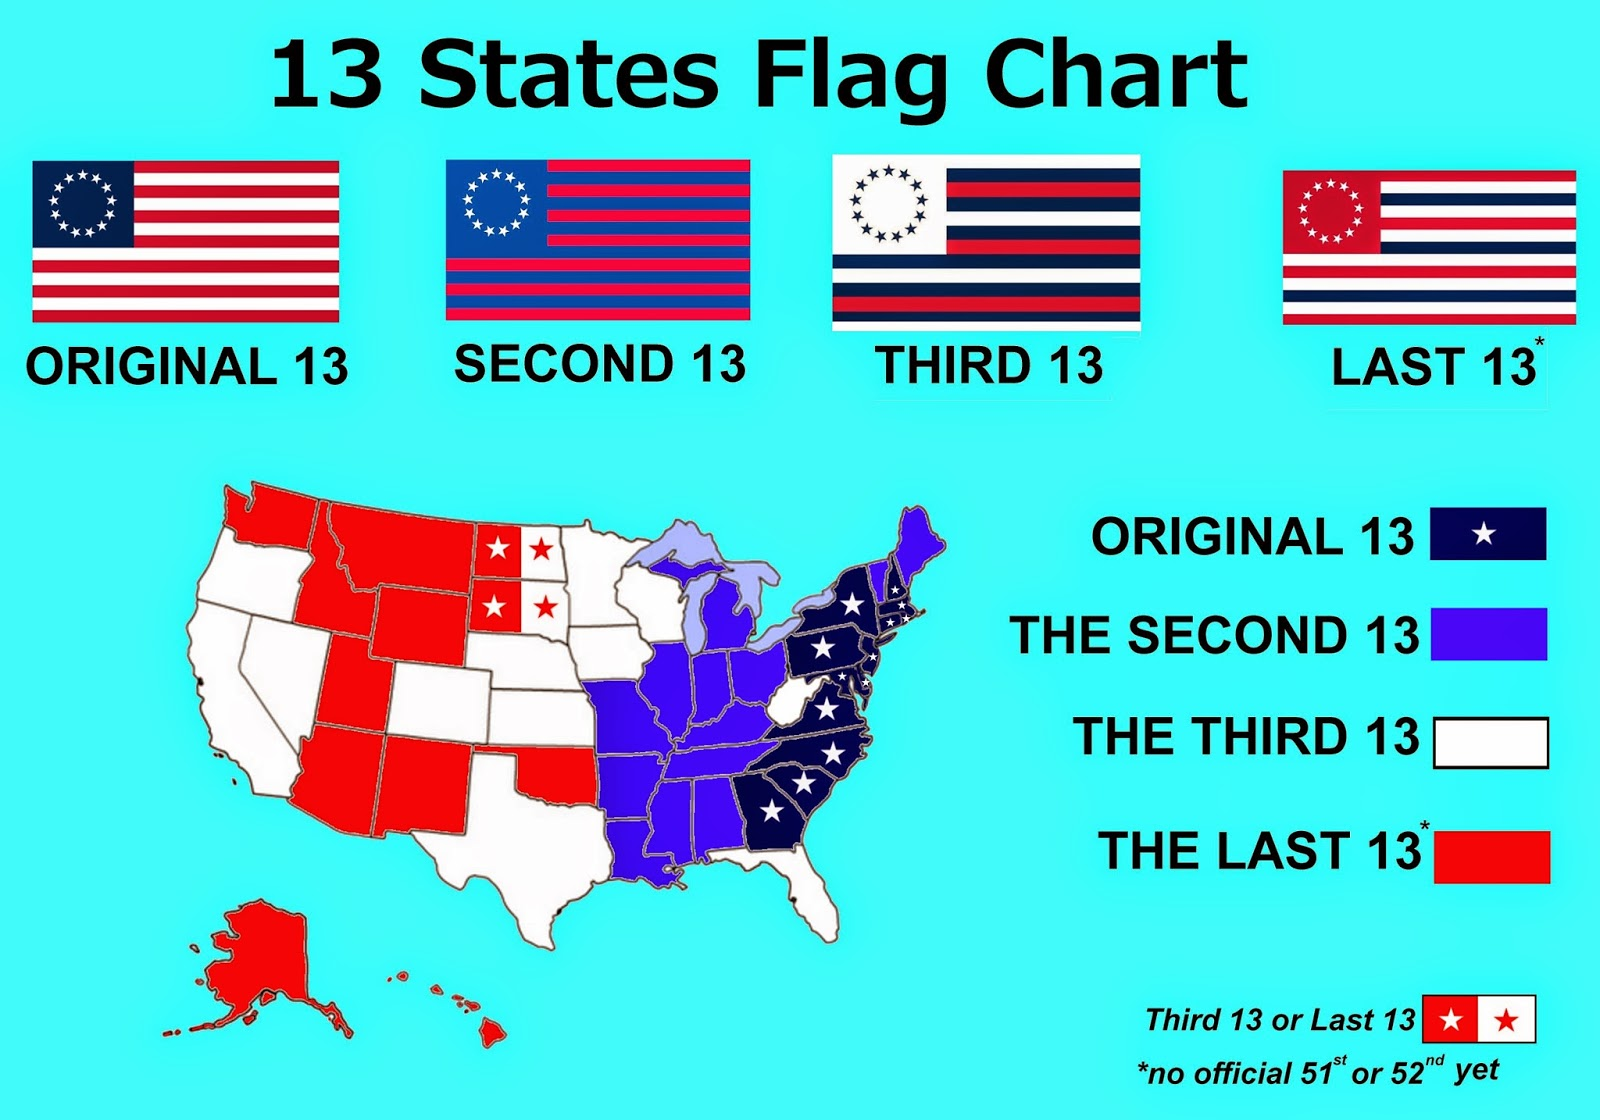 The Voice of Vexillology, Flags & Heraldry: Thirteen States ... on map of usa 1790, original 13 us states, 1st 13 states, map of seven cities, revolutionary war 13 states, map of five nations, united state map 13 states, map of asia pacific region, map of mid-atlantic region, 13 colonies states, map of industrialized world, map of united sates,